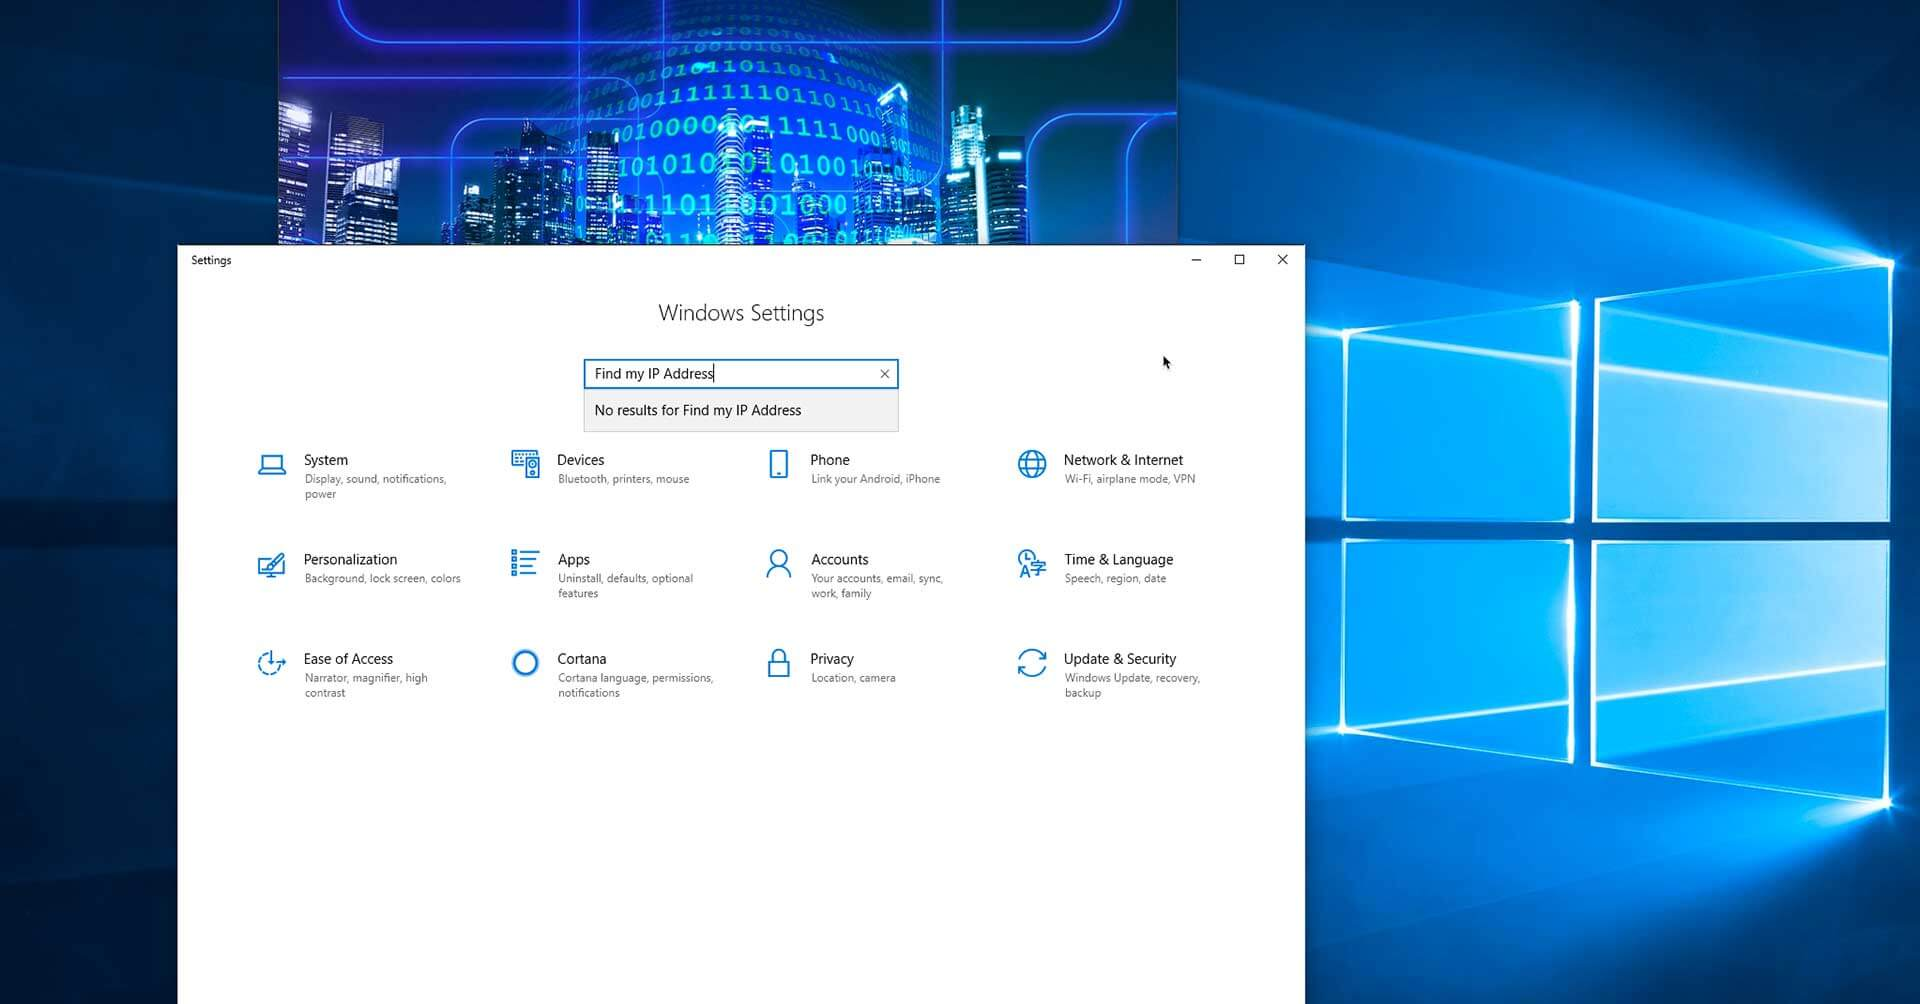 How Can I Find My IP Address Windows 10?